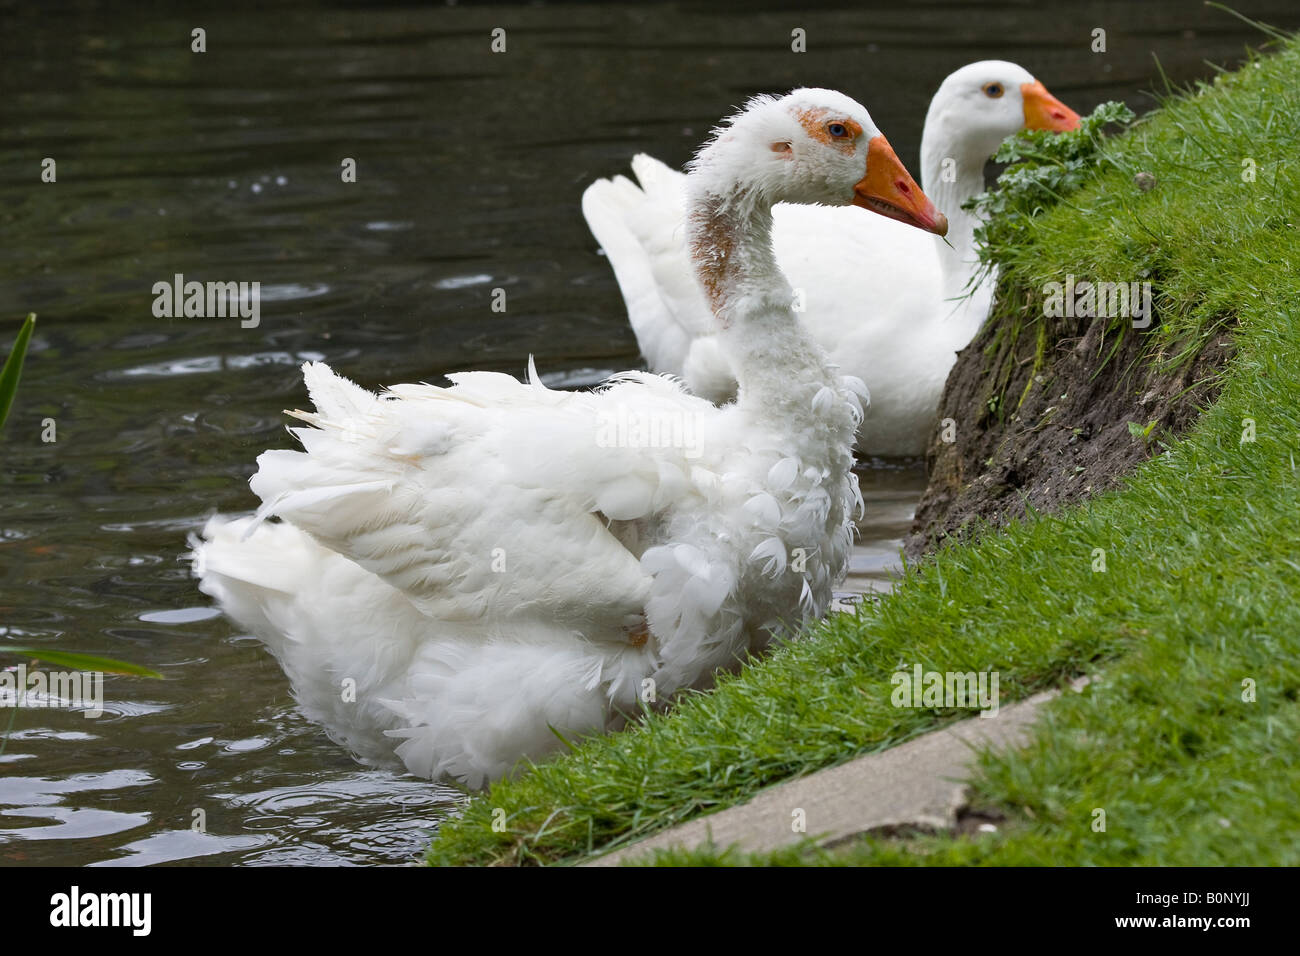 Large white Aylesbury duck showing signs of feather loss - Stock Image